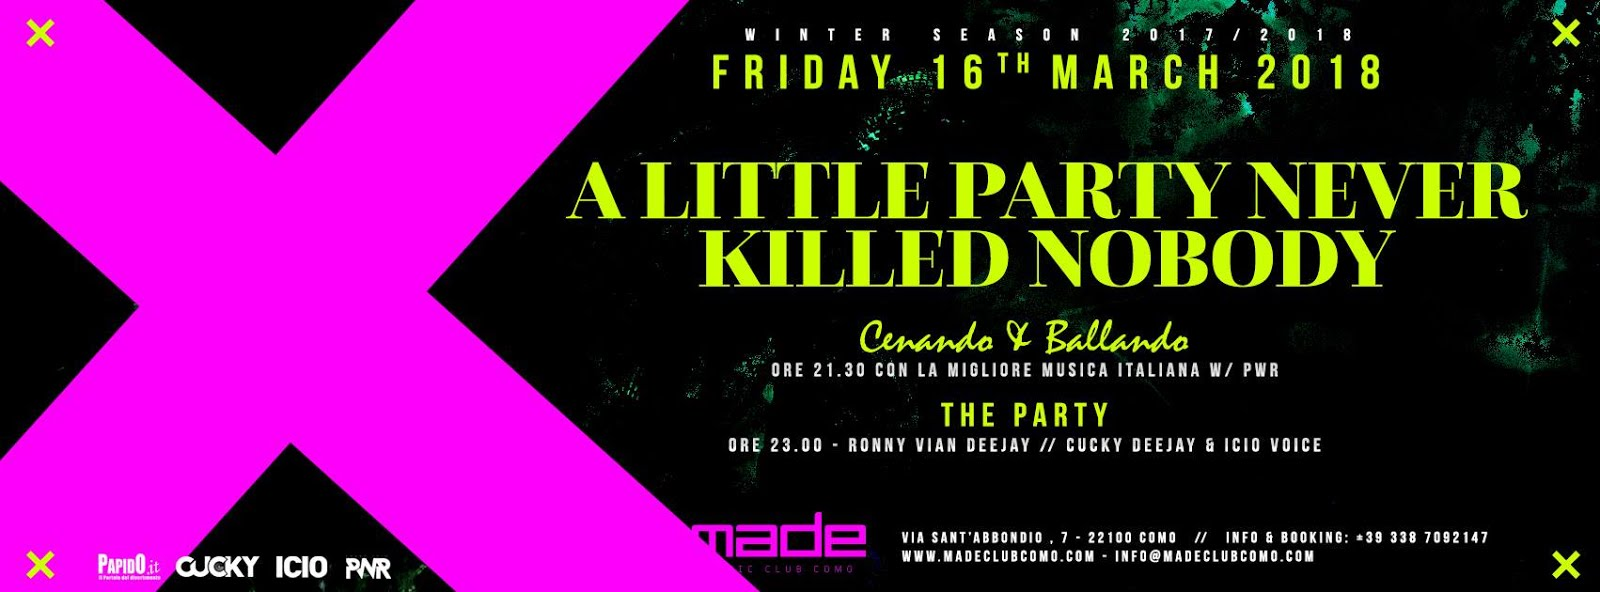 Made Club Como: A little party never killed nobody e XXL, hiphop finest in Formentera